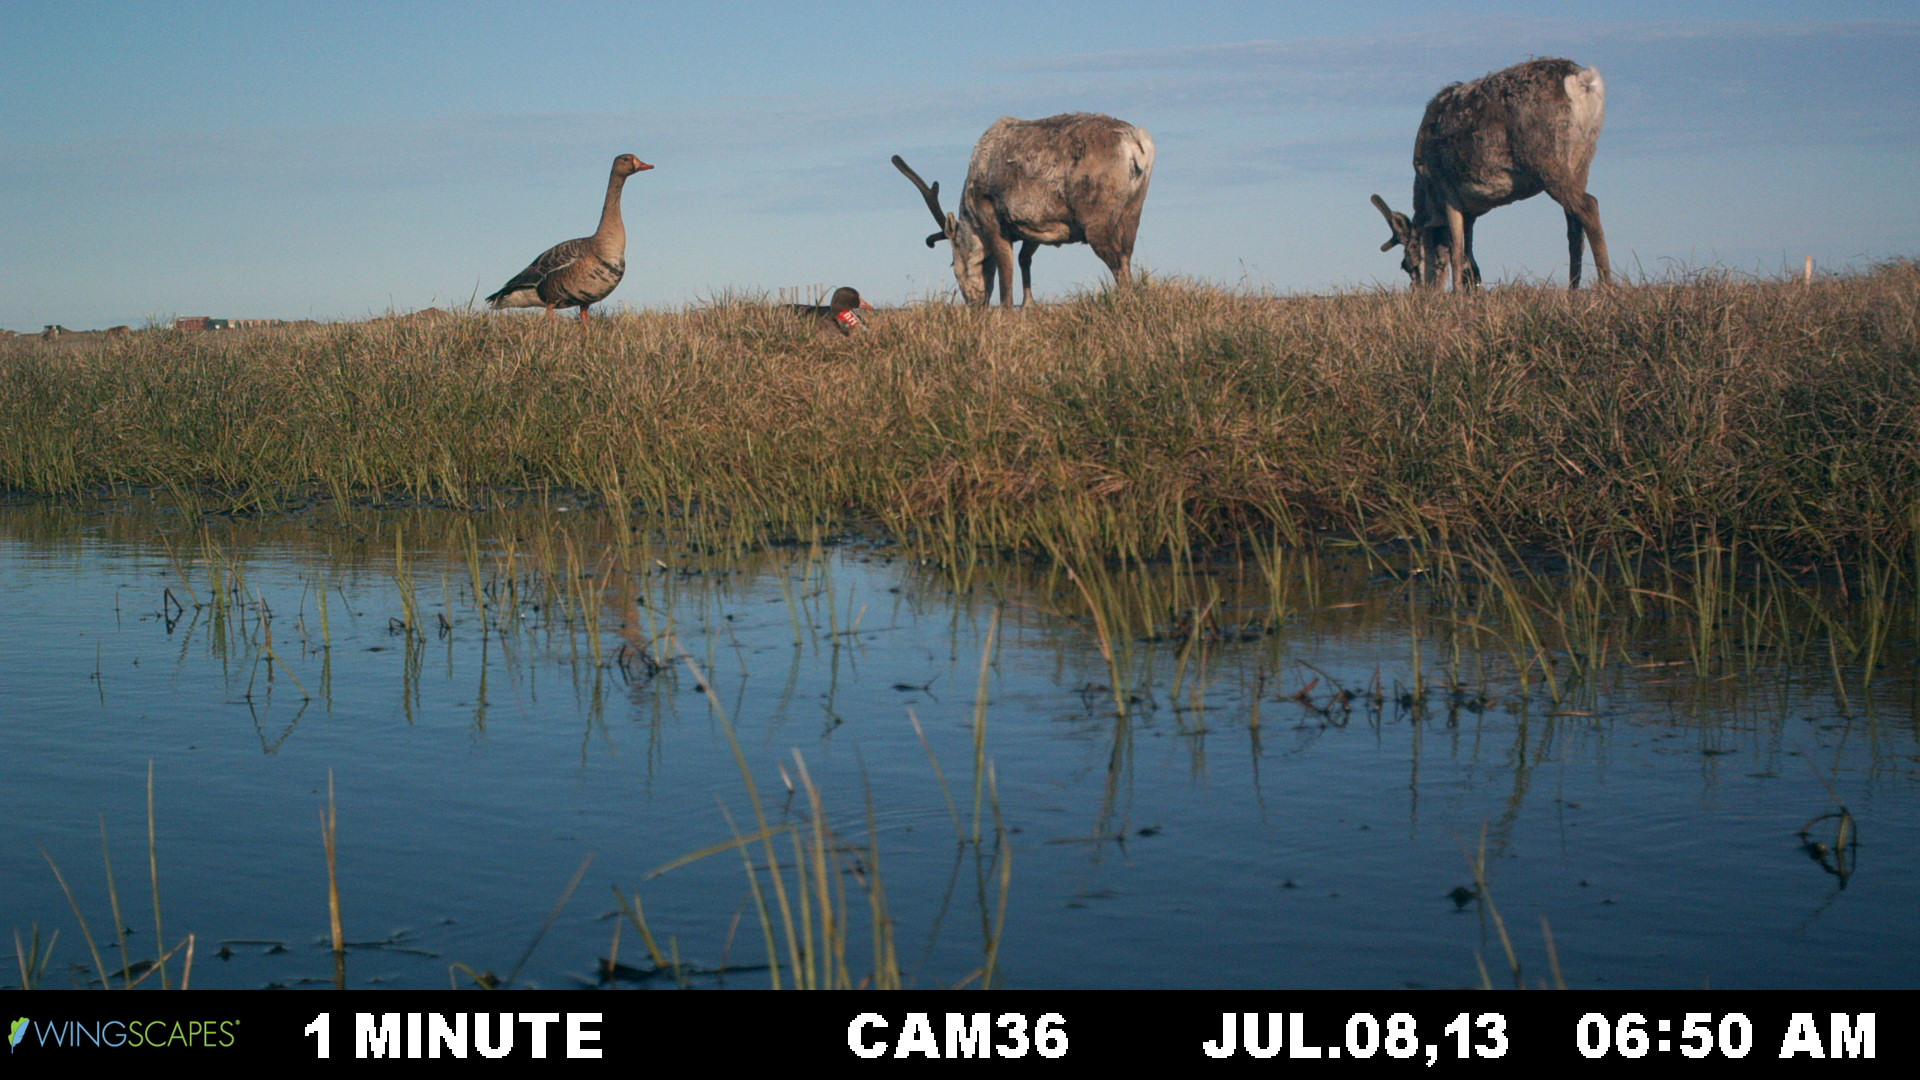 Geese at Lonely Point/Camp Lonely were documented automatically by installed cameras over 2013-14. Their nesting behaviors and interactions with other animals were captured. The geese didn't seem bothered much by caribou. (Brandt Meixell / USGS)